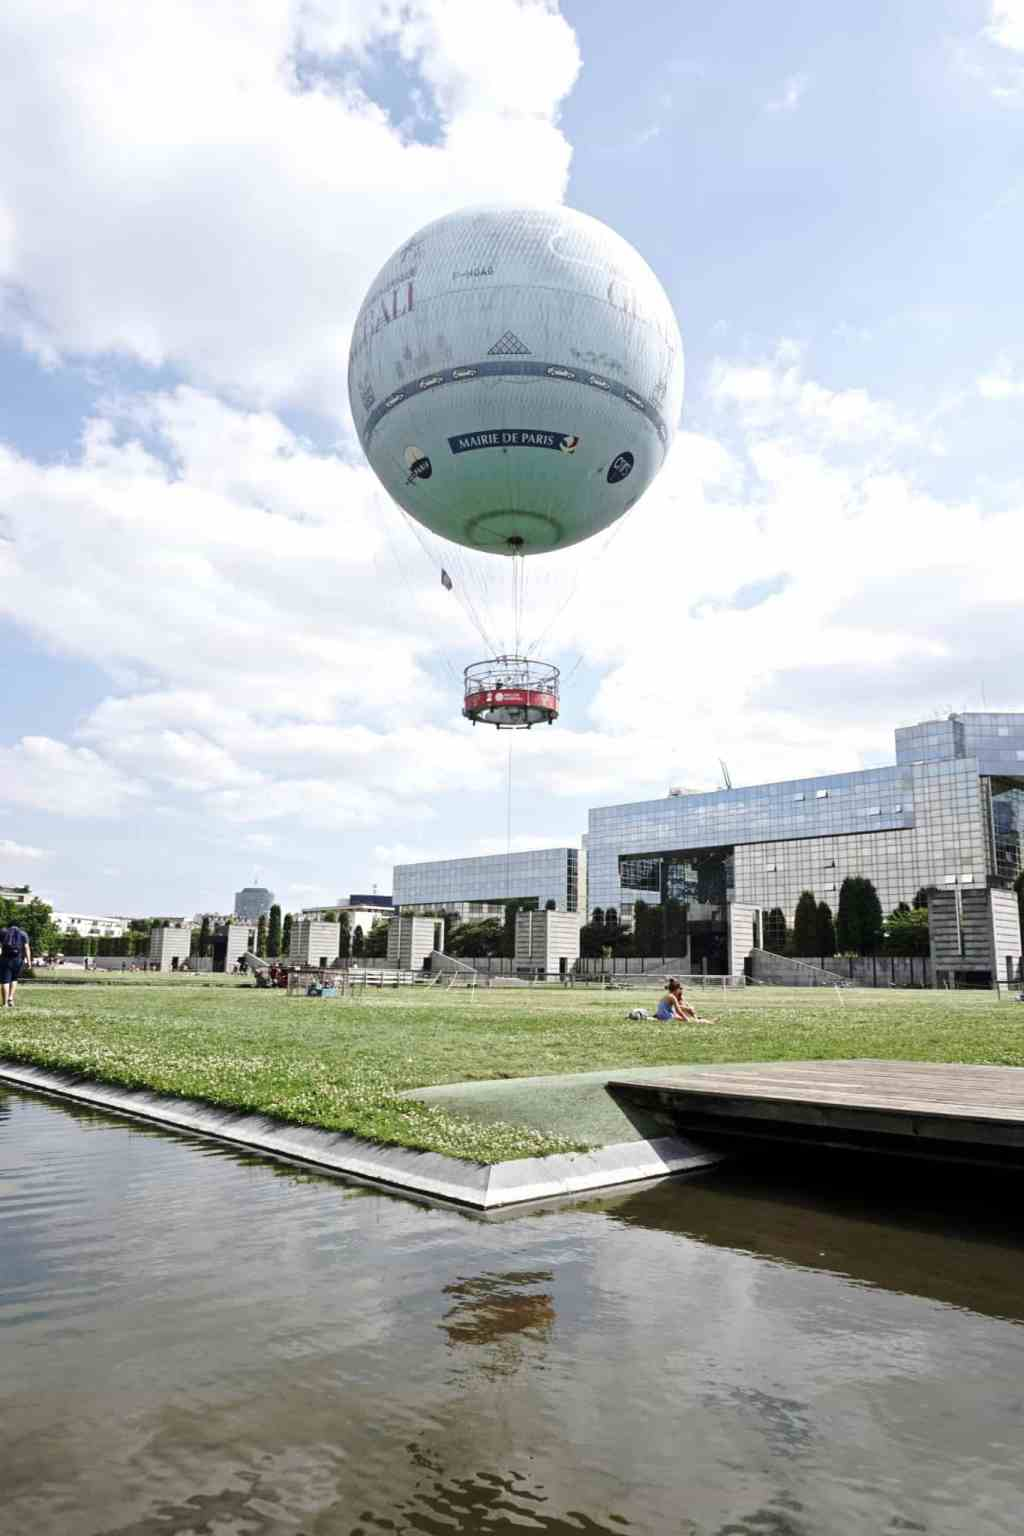 Parc Andre Citroen: An Oasis of Green With a Hot Air Balloon ...